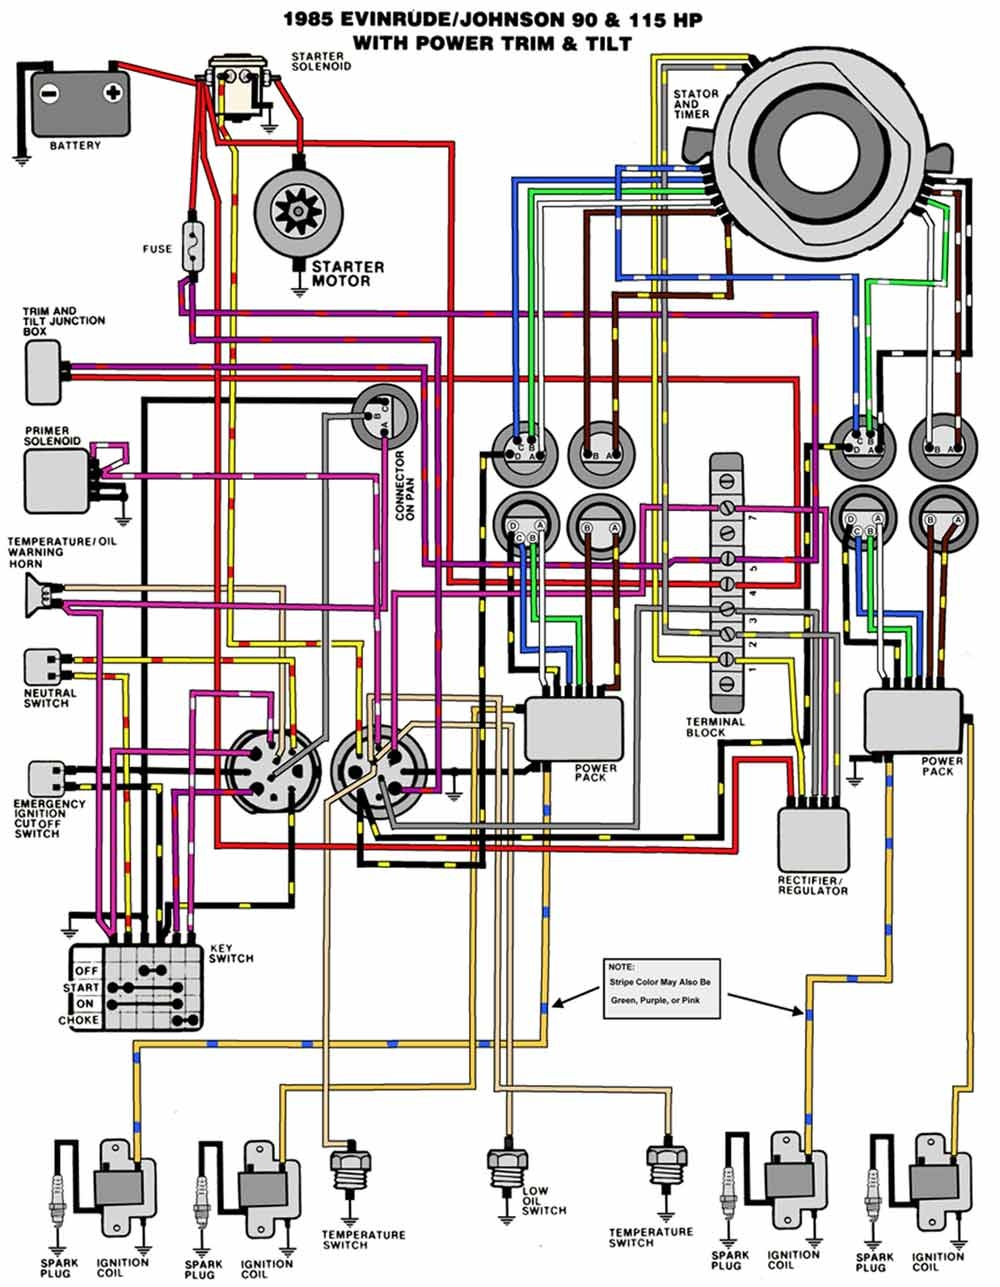 gm ignition switch wiring diagram kill switch mariner ignition switch wiring diagram